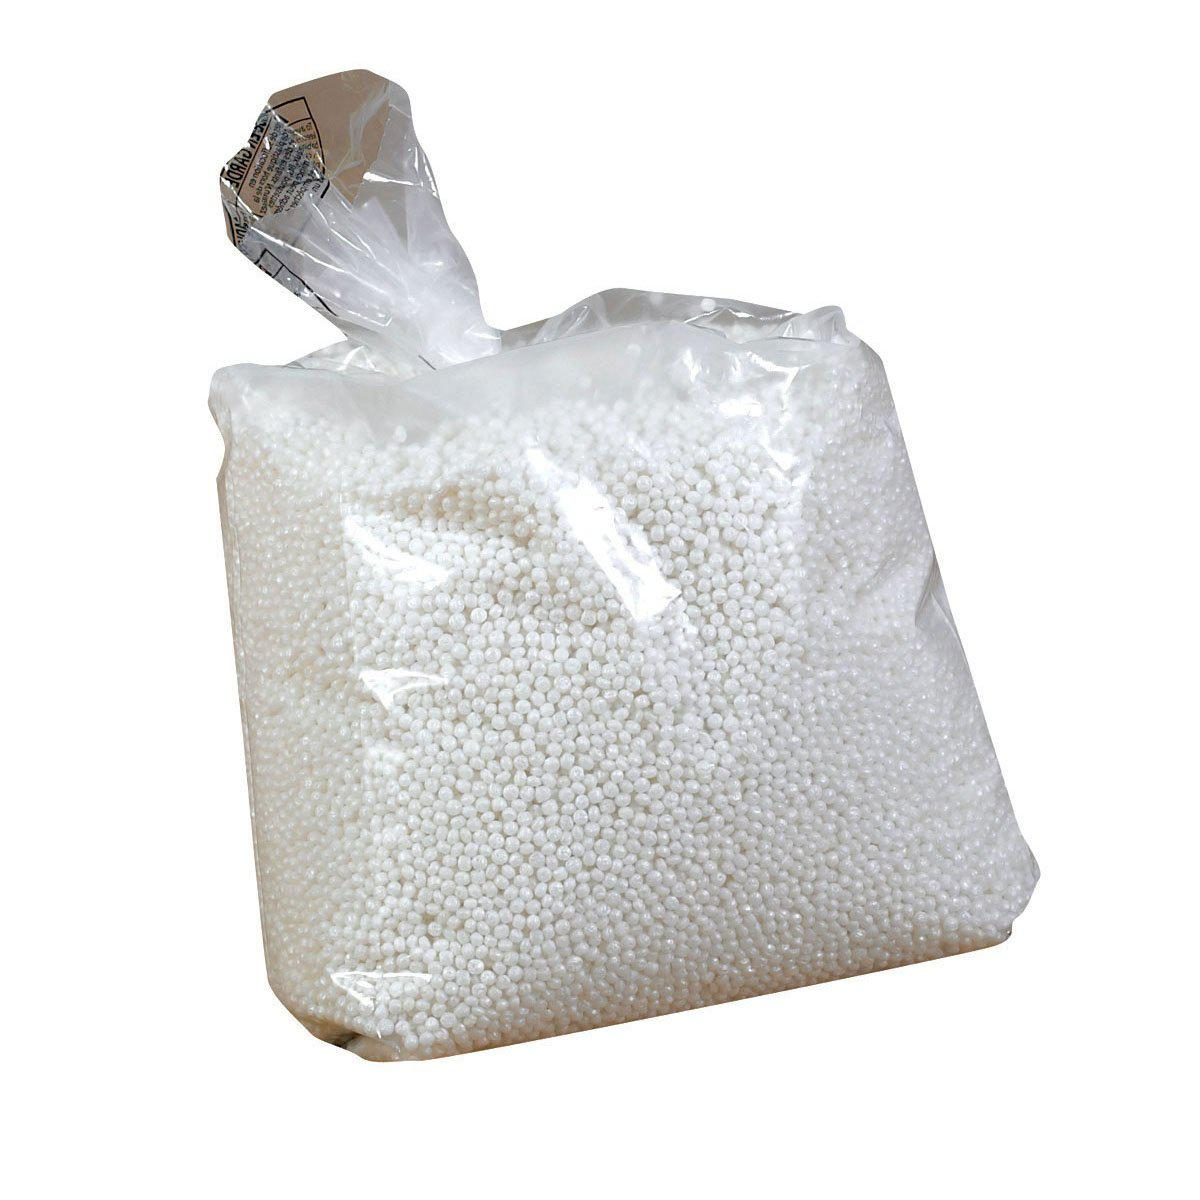 Bean Bag Chair Refill Beads - 2 Cubic Feet